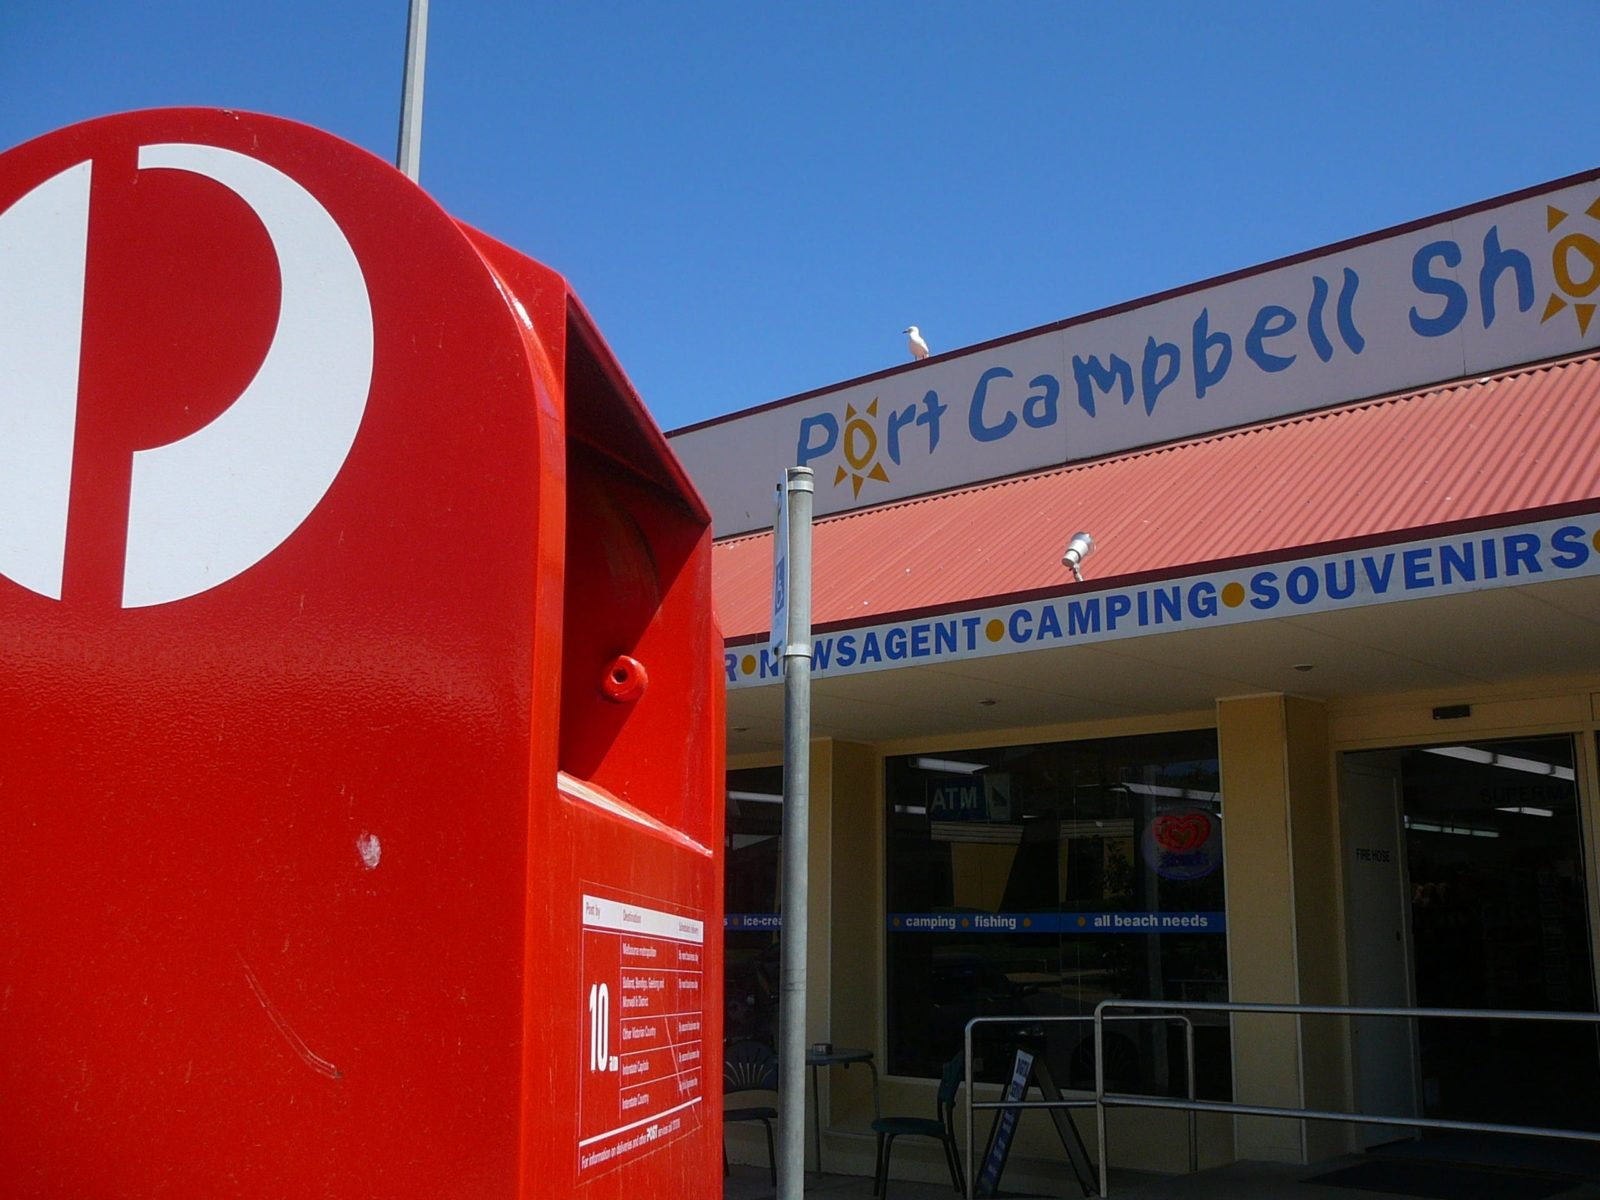 Main entrance to the store, showing close up of Australia Post post box